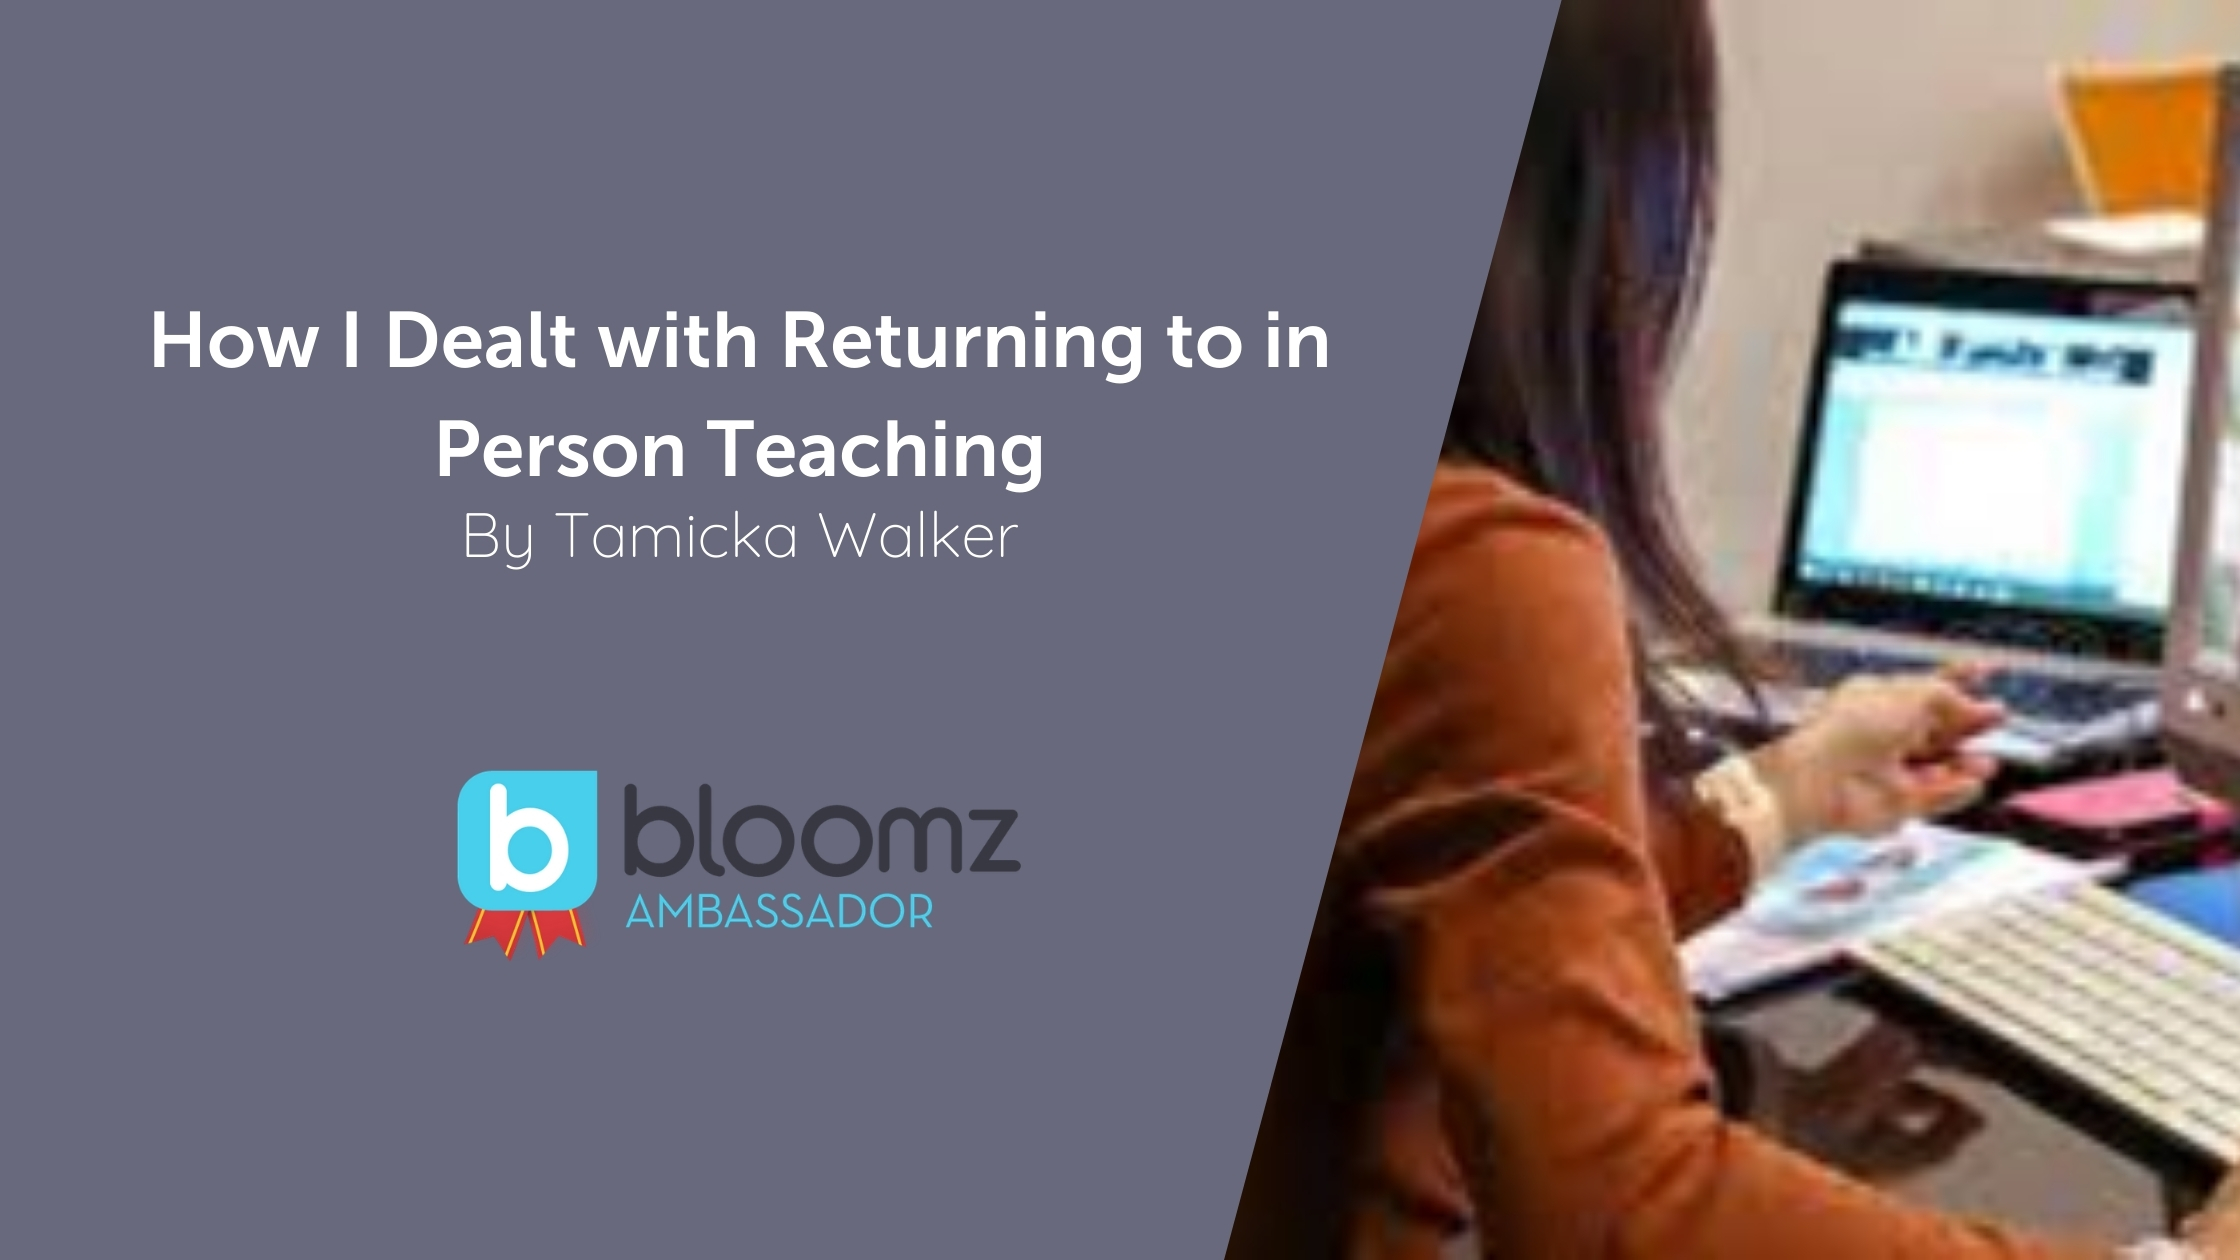 How I Dealt with Returning to in-Person Teaching